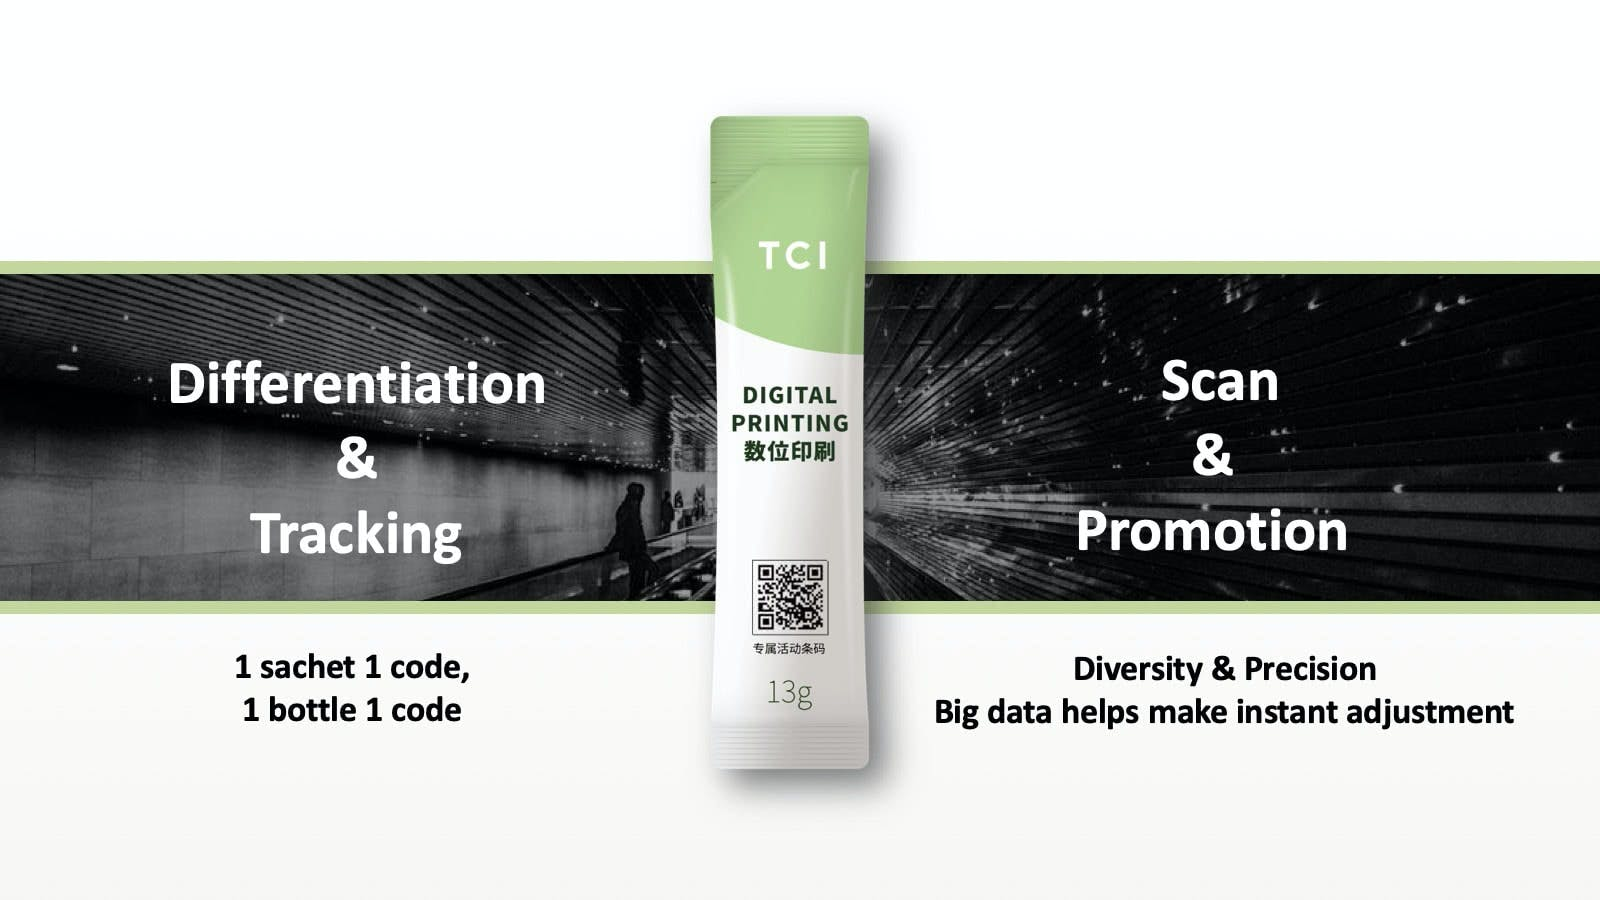 TCI Digital Printing Packages